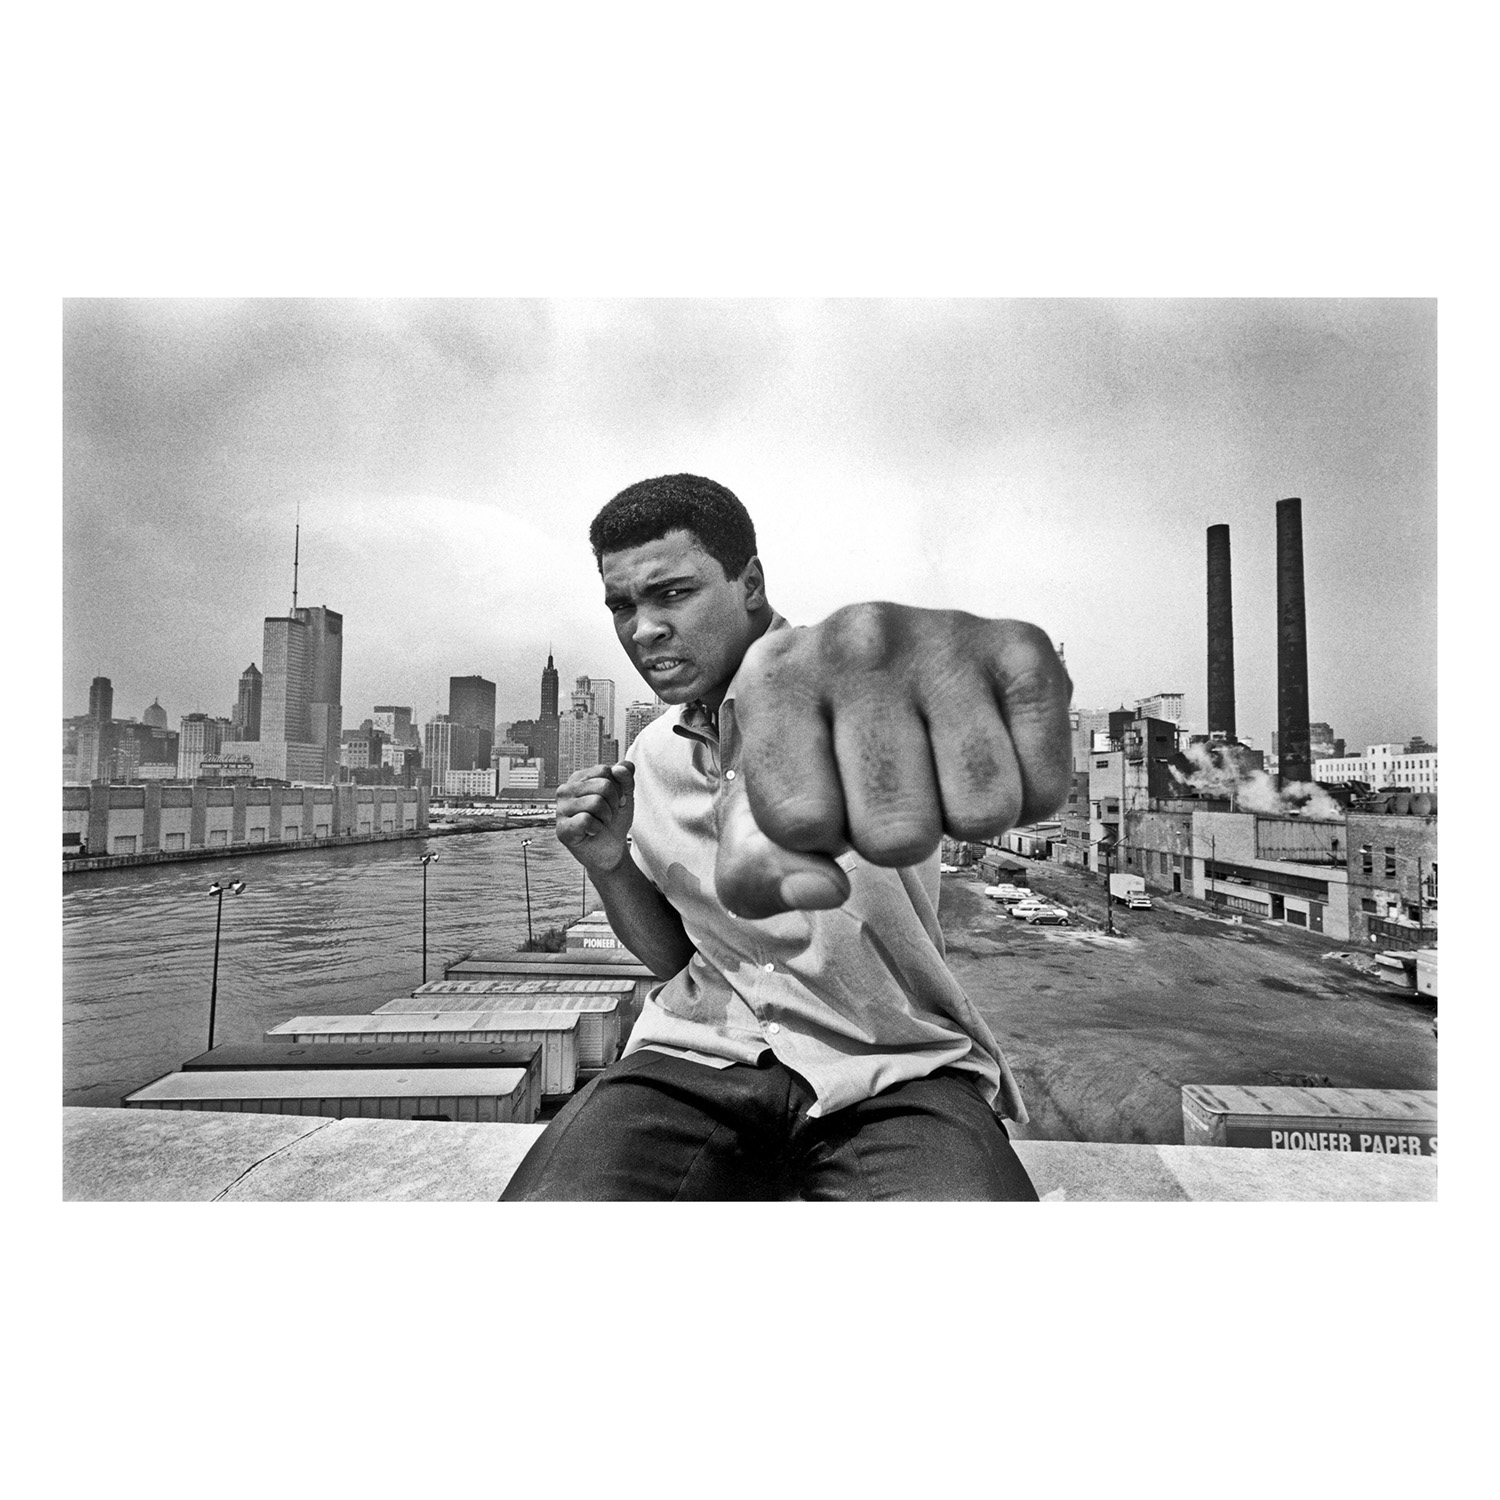 Muhammad ALI on a bridge overlooking the Chicago River and the city's skyline. Chicago, Illinois. USA. 1966.